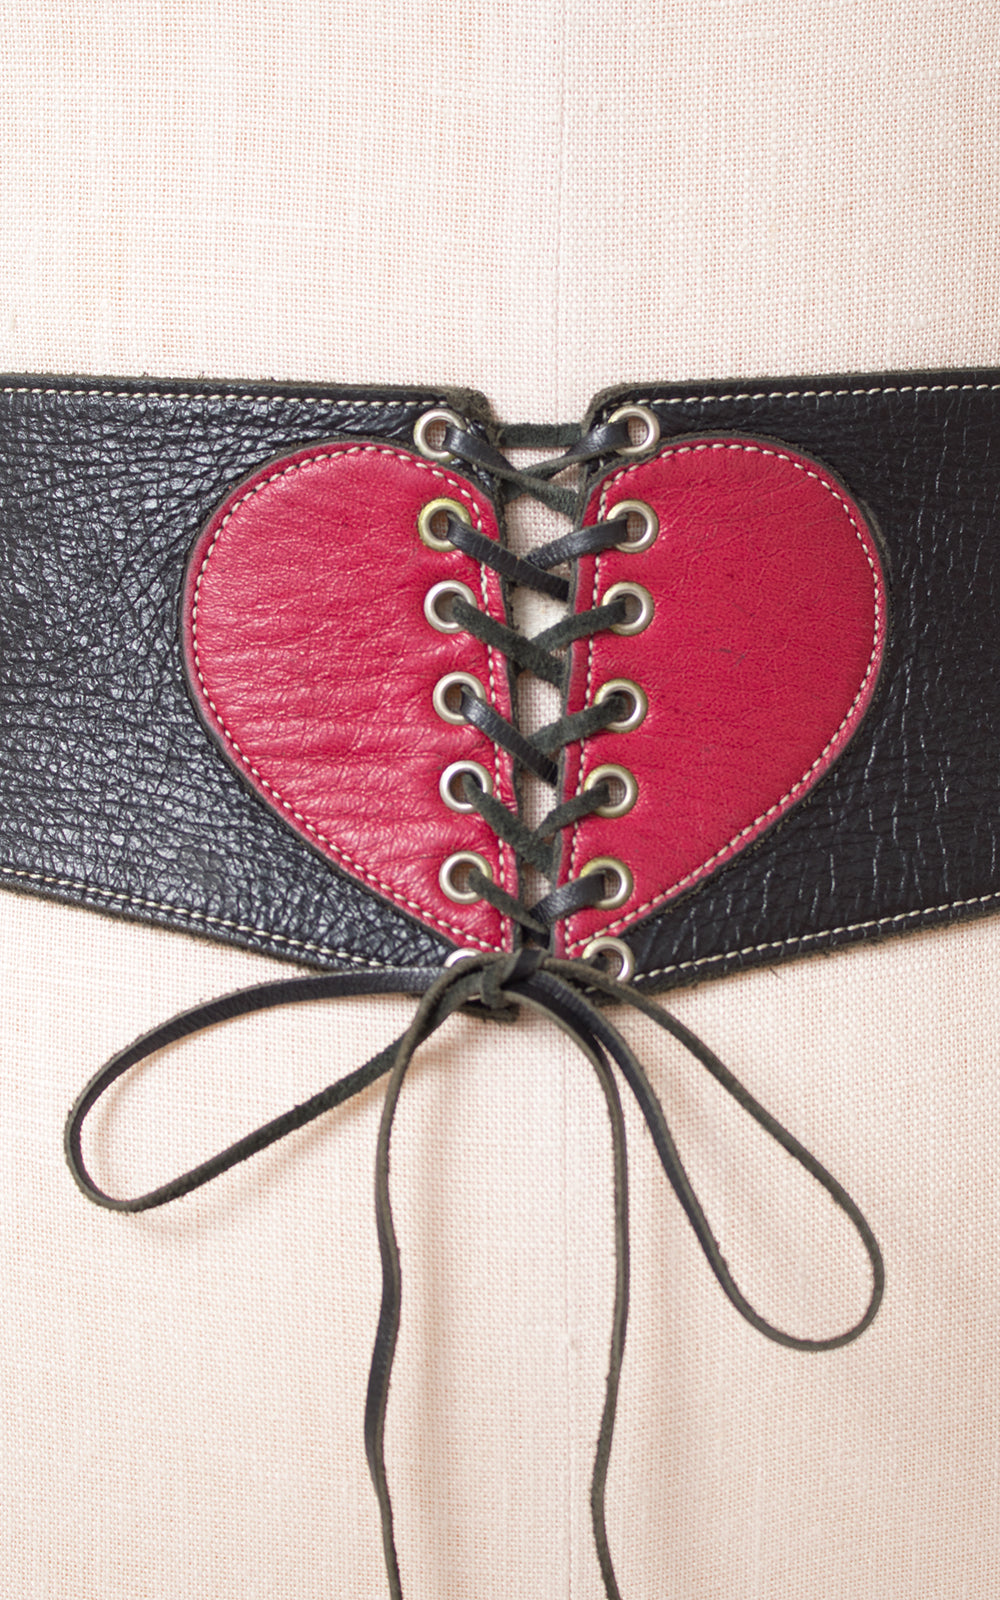 1970s Leather Heart Corset Cinch Belt